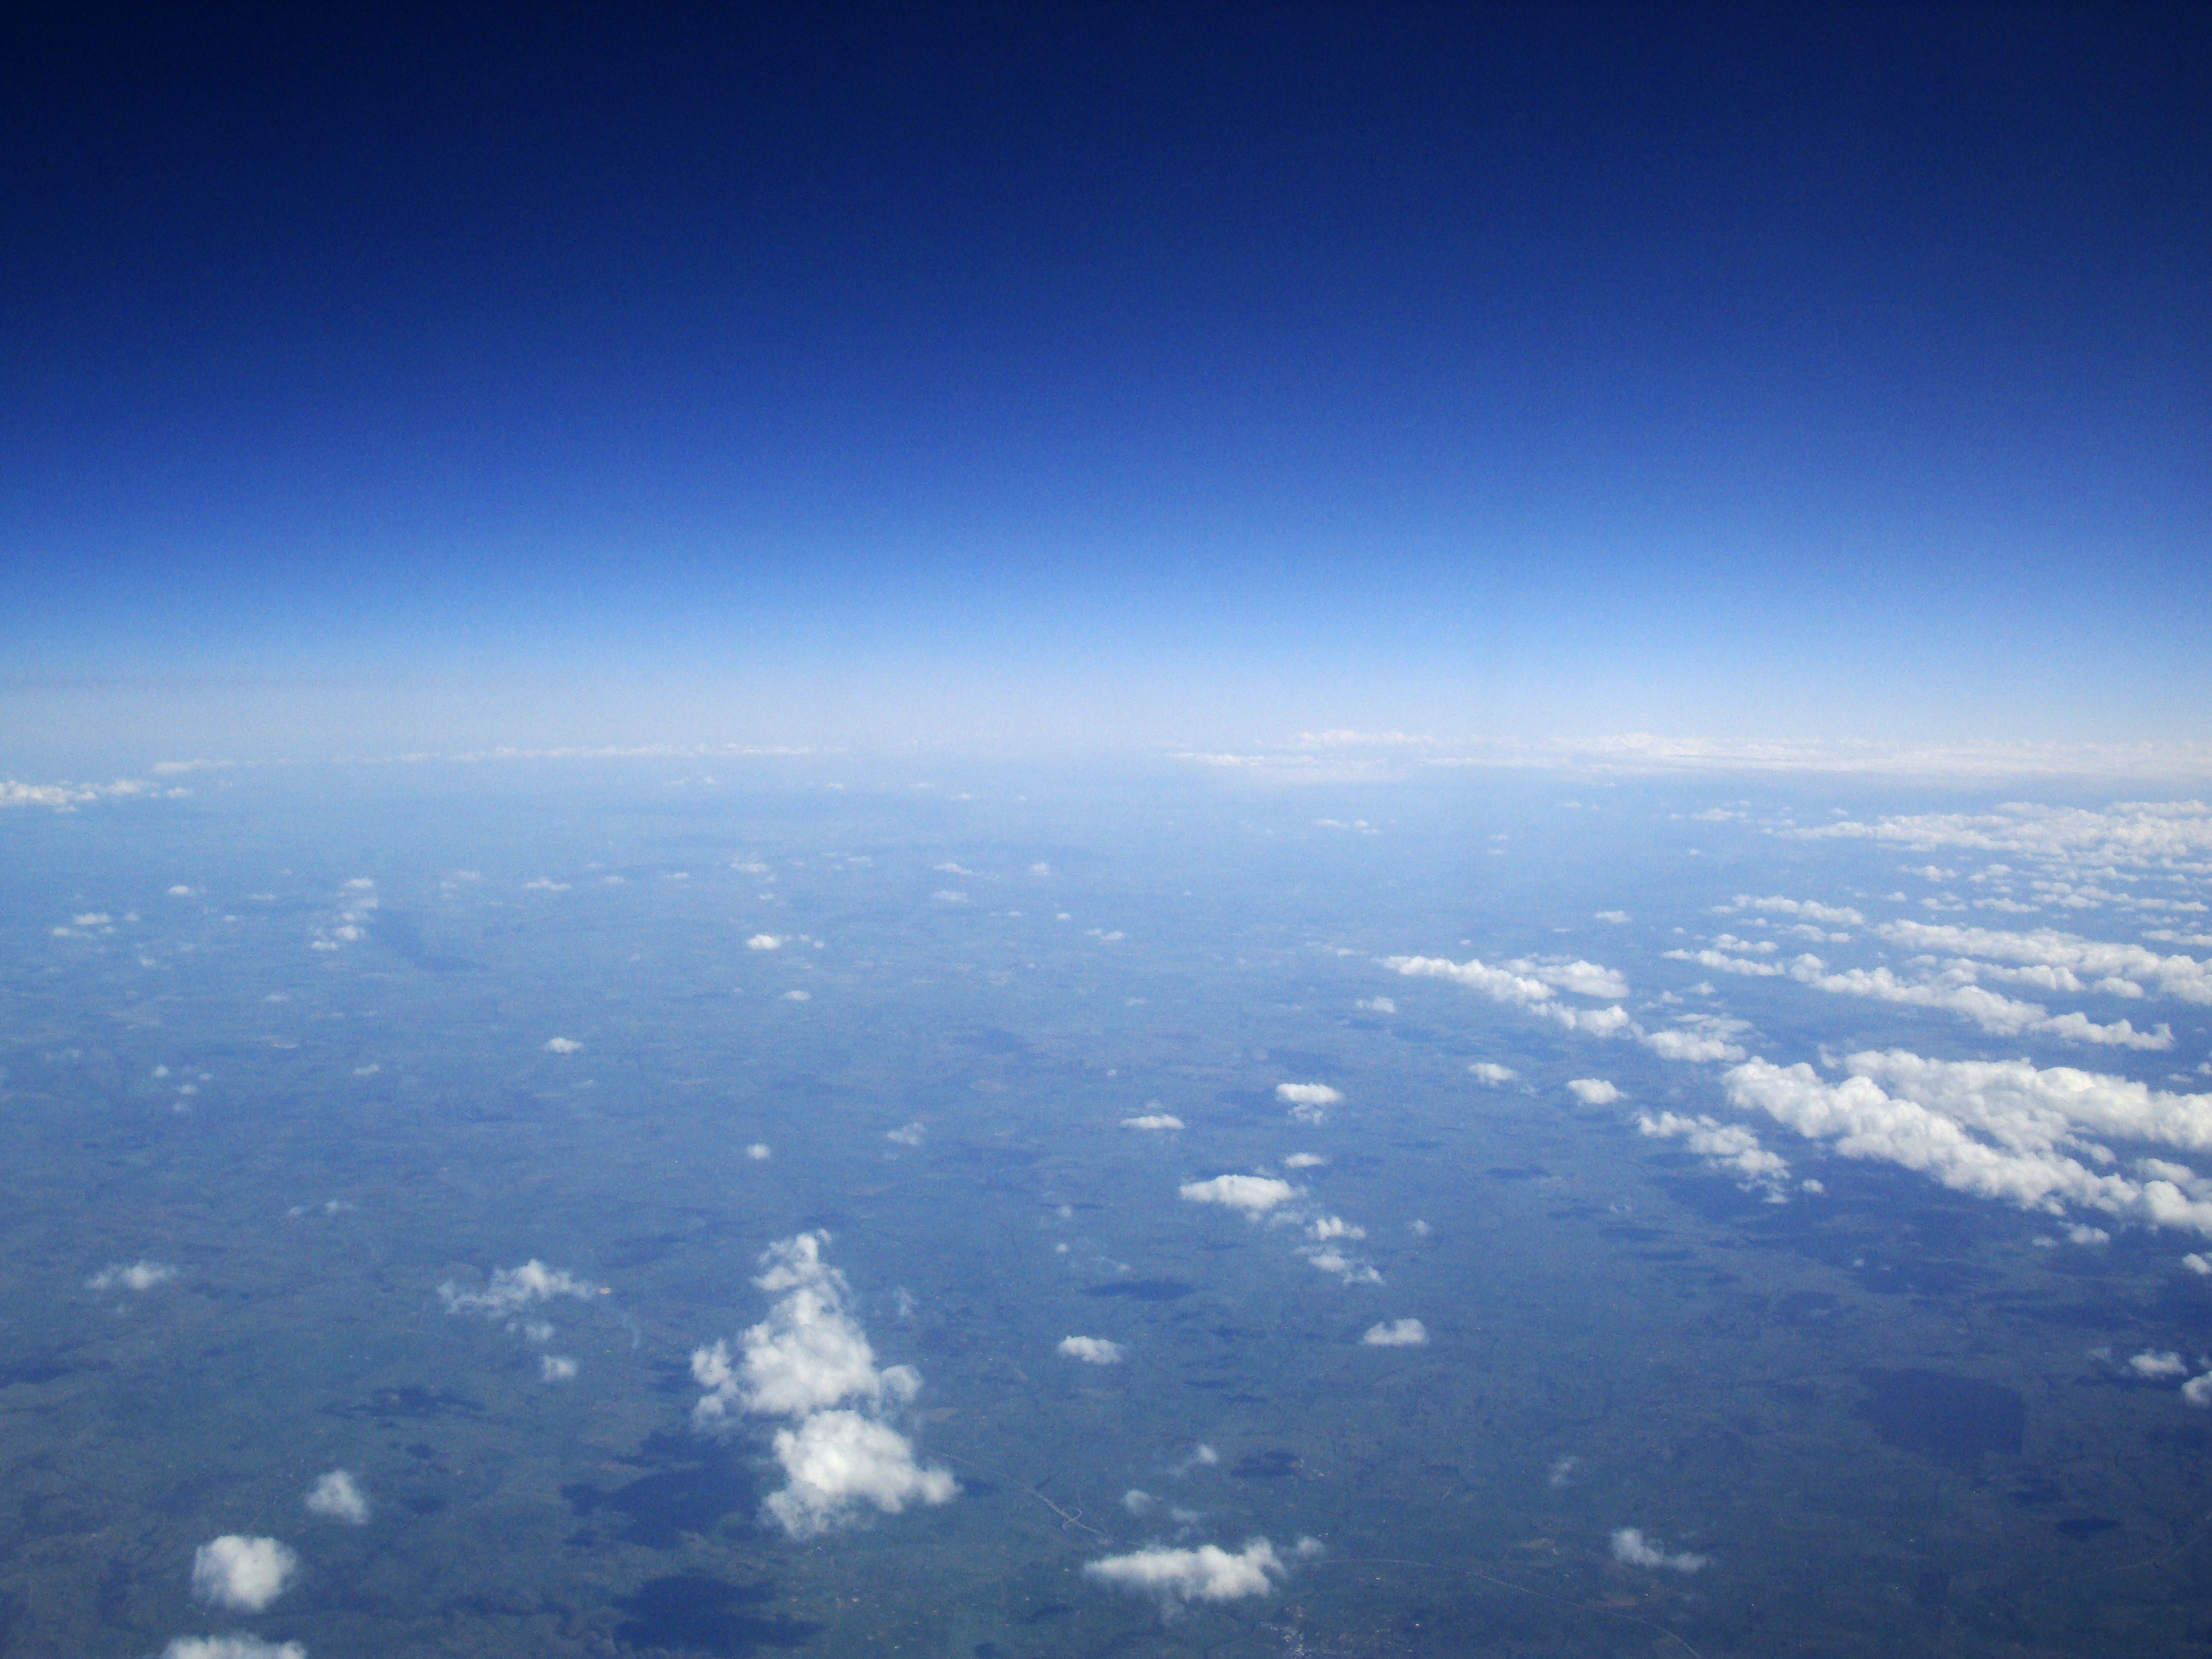 Textures Clouds Formations Sky Storms Weather Phenomena Aerial Views 10